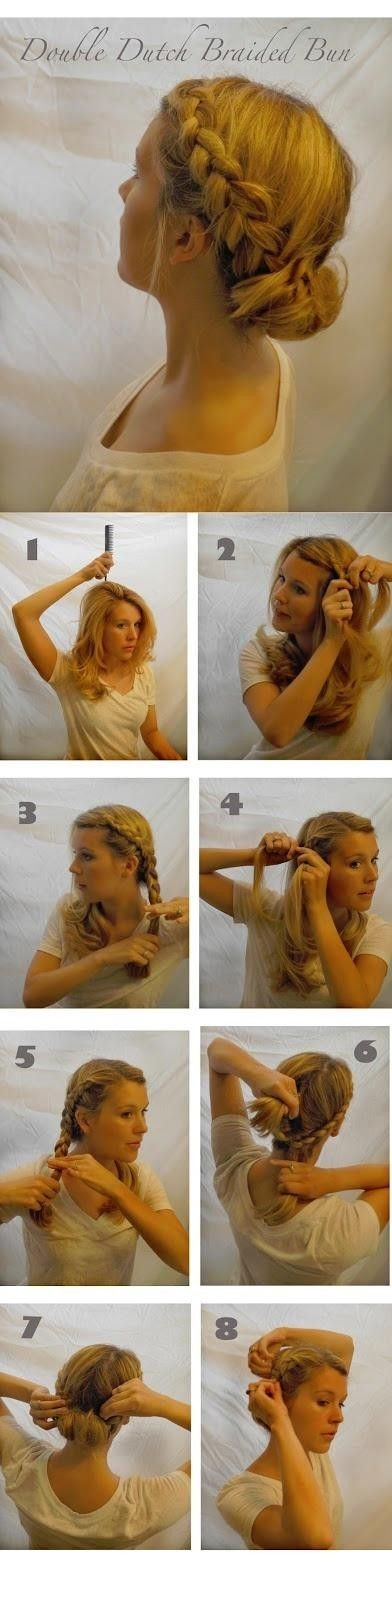 The double Dutch braided bun looks amazing and offers a polished and romantic appearance. The smashing approachable hairstyle is perfect for people with heart-shaped face structures and is wonderful for any day or night occasion. Divide your hair from the middle. Create the left side into a Dutch braid towards the back. Repeat the same[Read the Rest]